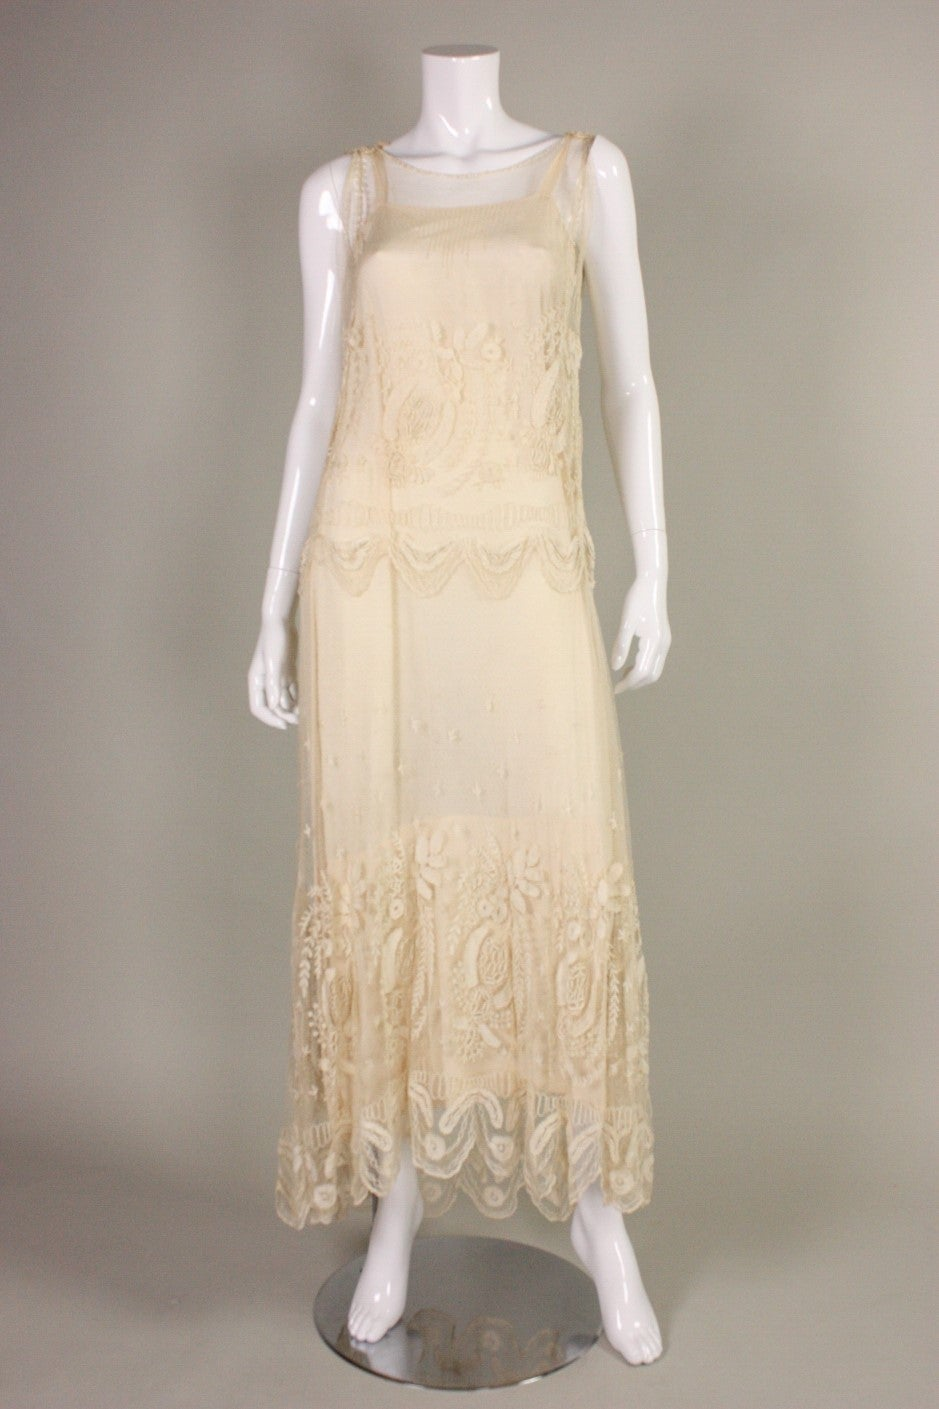 Teens Cream Net Dress With Embroidery For Sale At 1stdibs